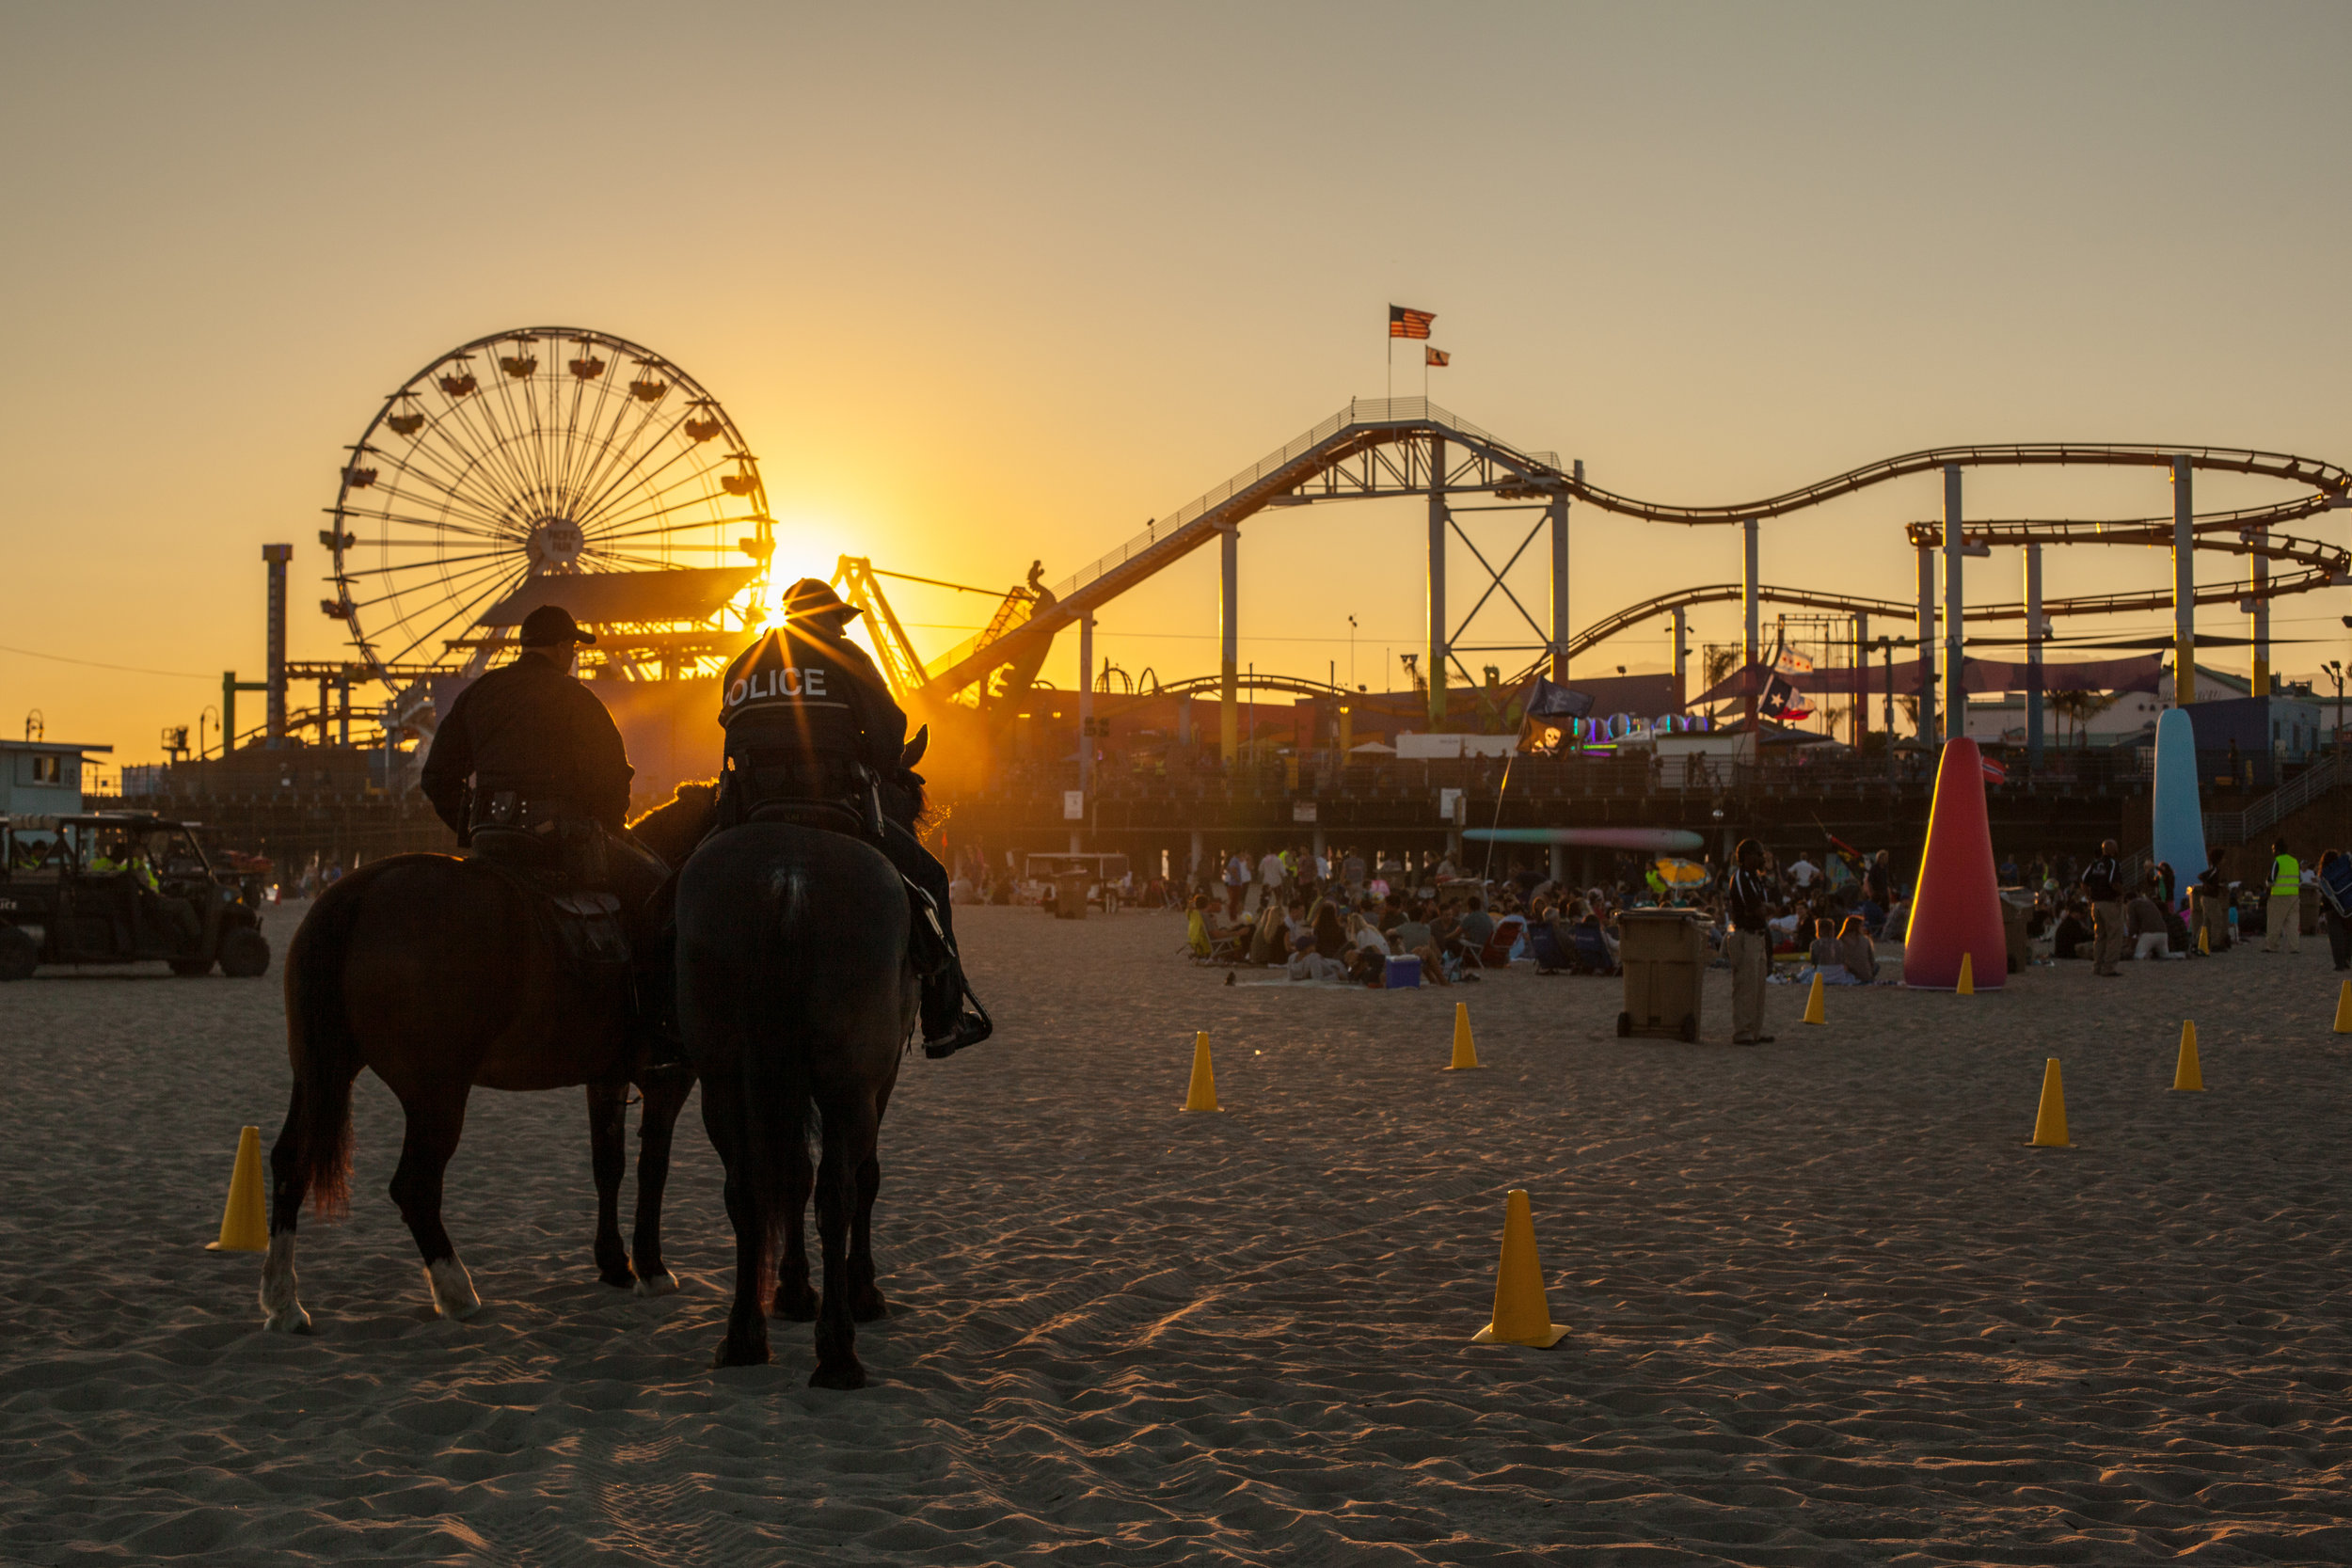 Police on horseback on the beach at Santa Monica with the famous pier in the background.